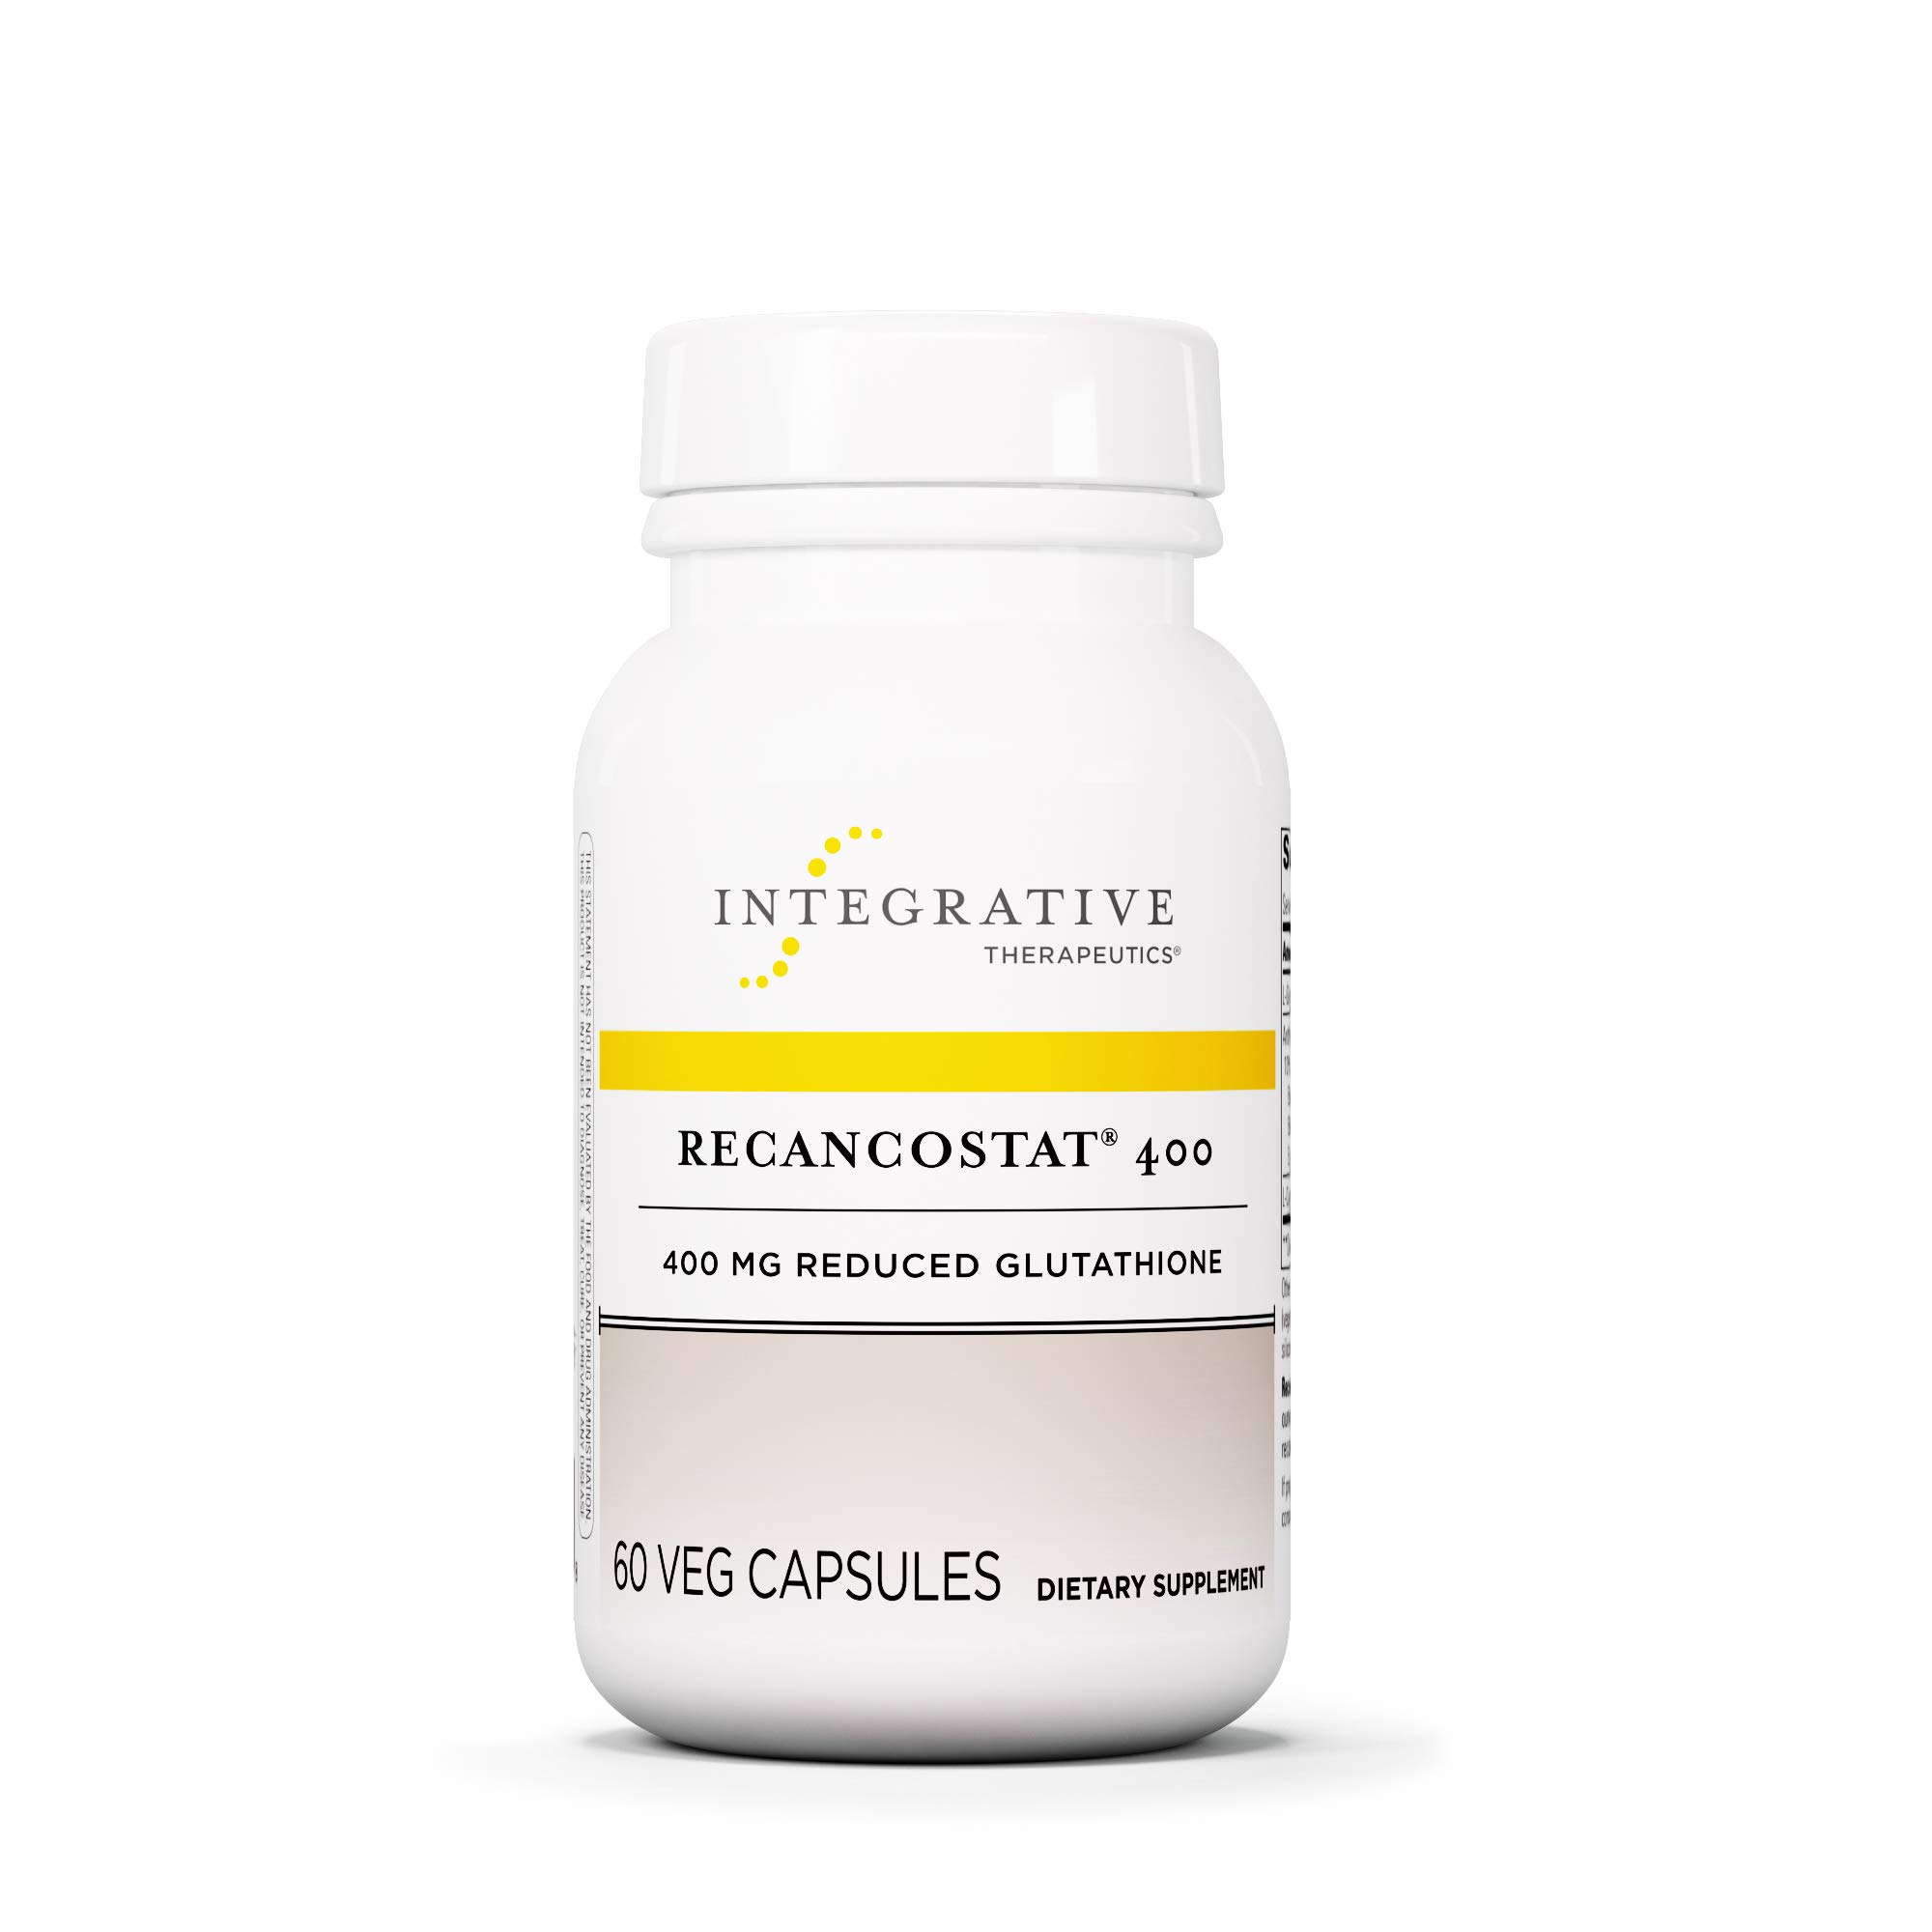 Integrative Therapeutics - Recancostat 400 - 400 mg Reduced Glutathione - With Anthocyanins & L-Cysteine to Support Healthy Cell Development - 60 Capsules